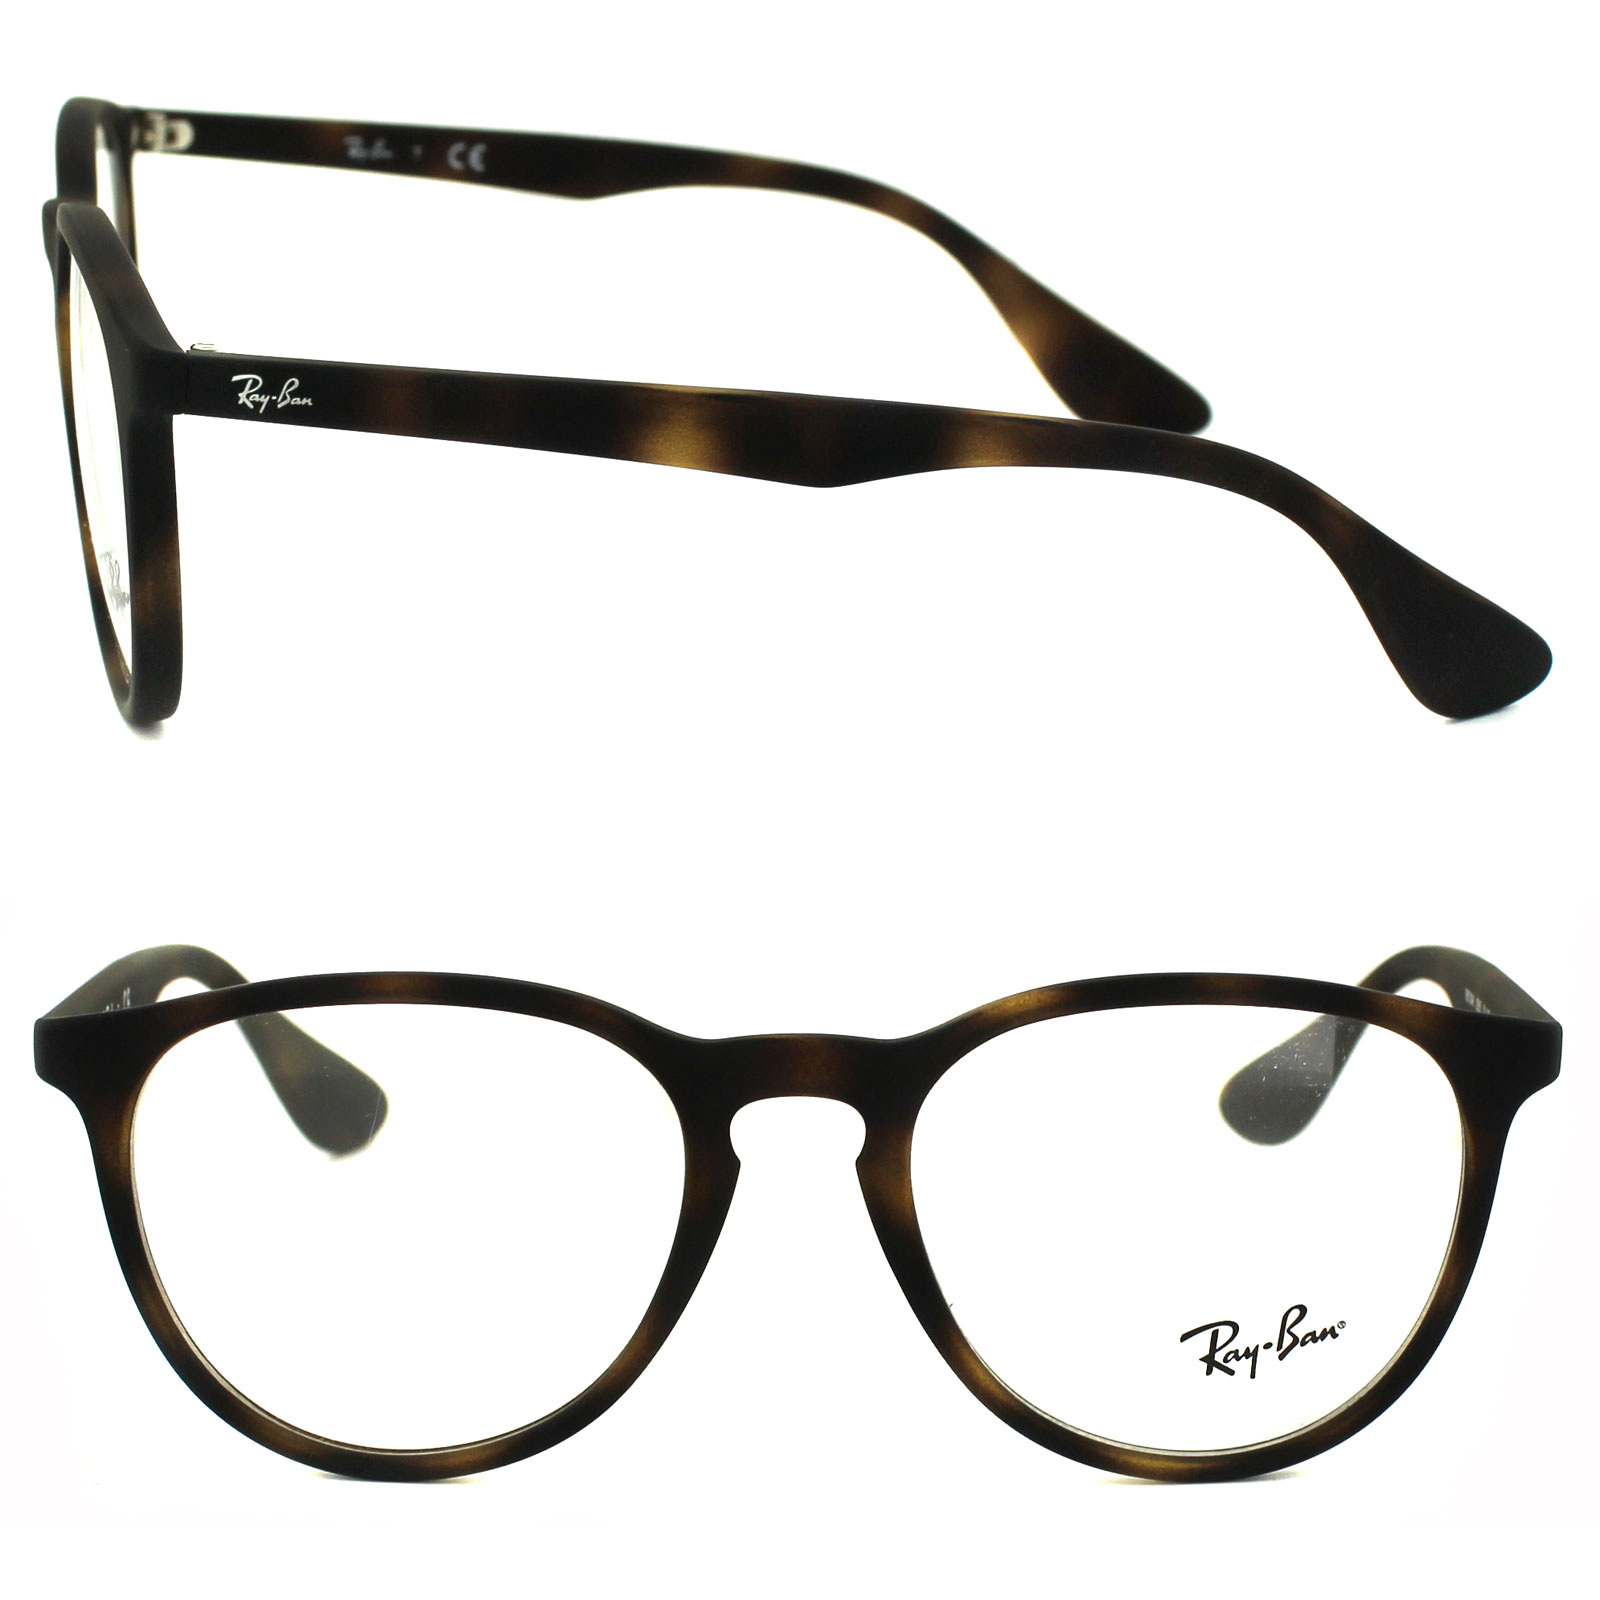 46a4ff0624 Ray-Ban Glasses Frames 7046 5365 Rubberised Havana 8053672357844